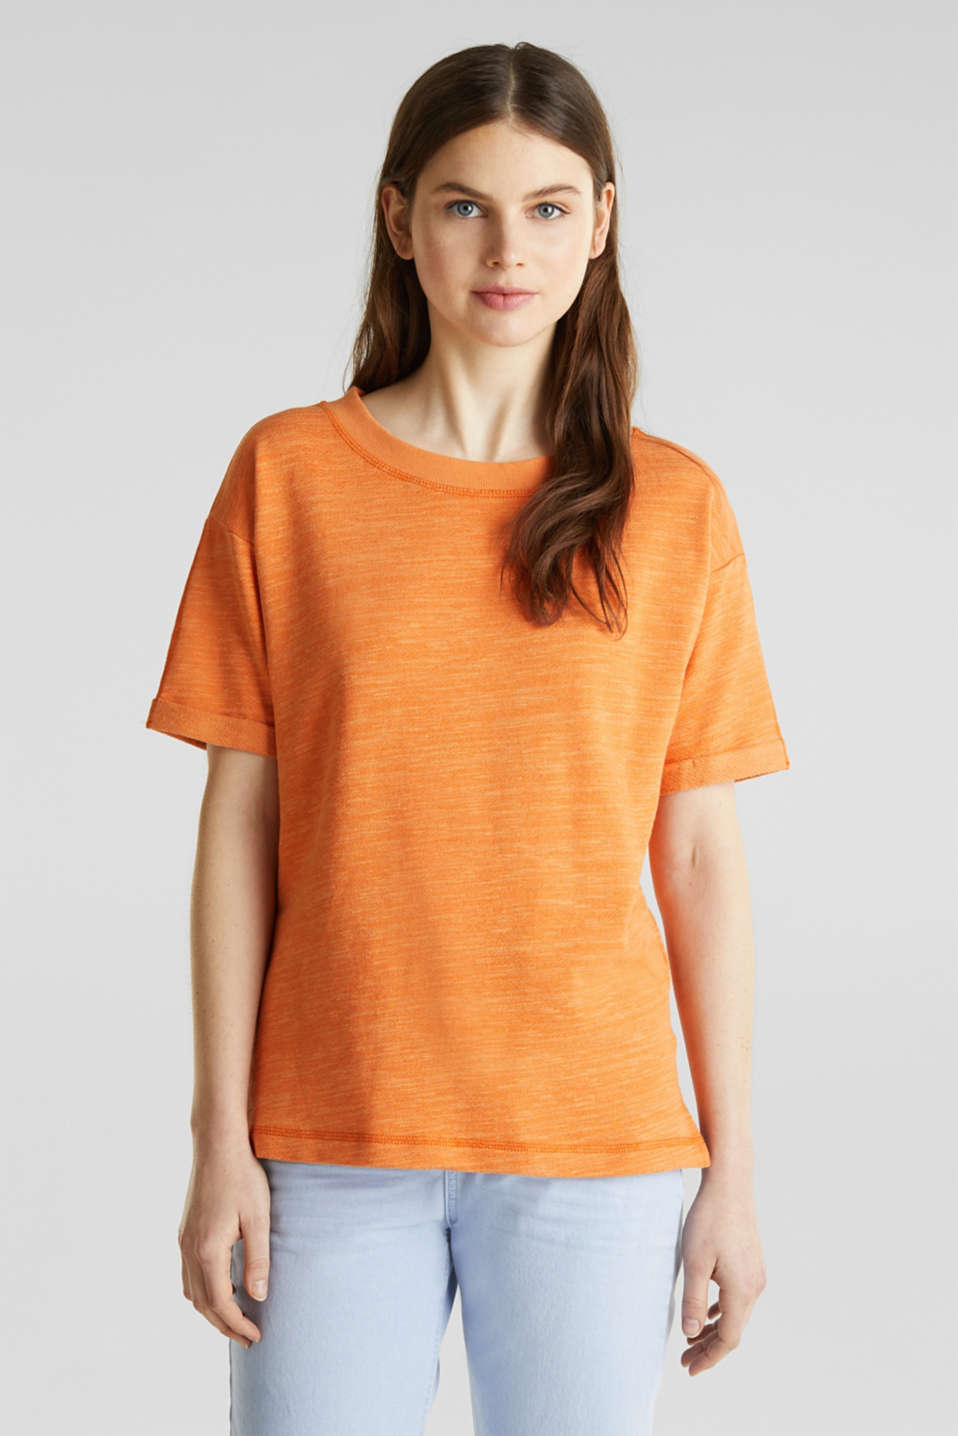 Textured top in blended cotton, RUST ORANGE, detail image number 0